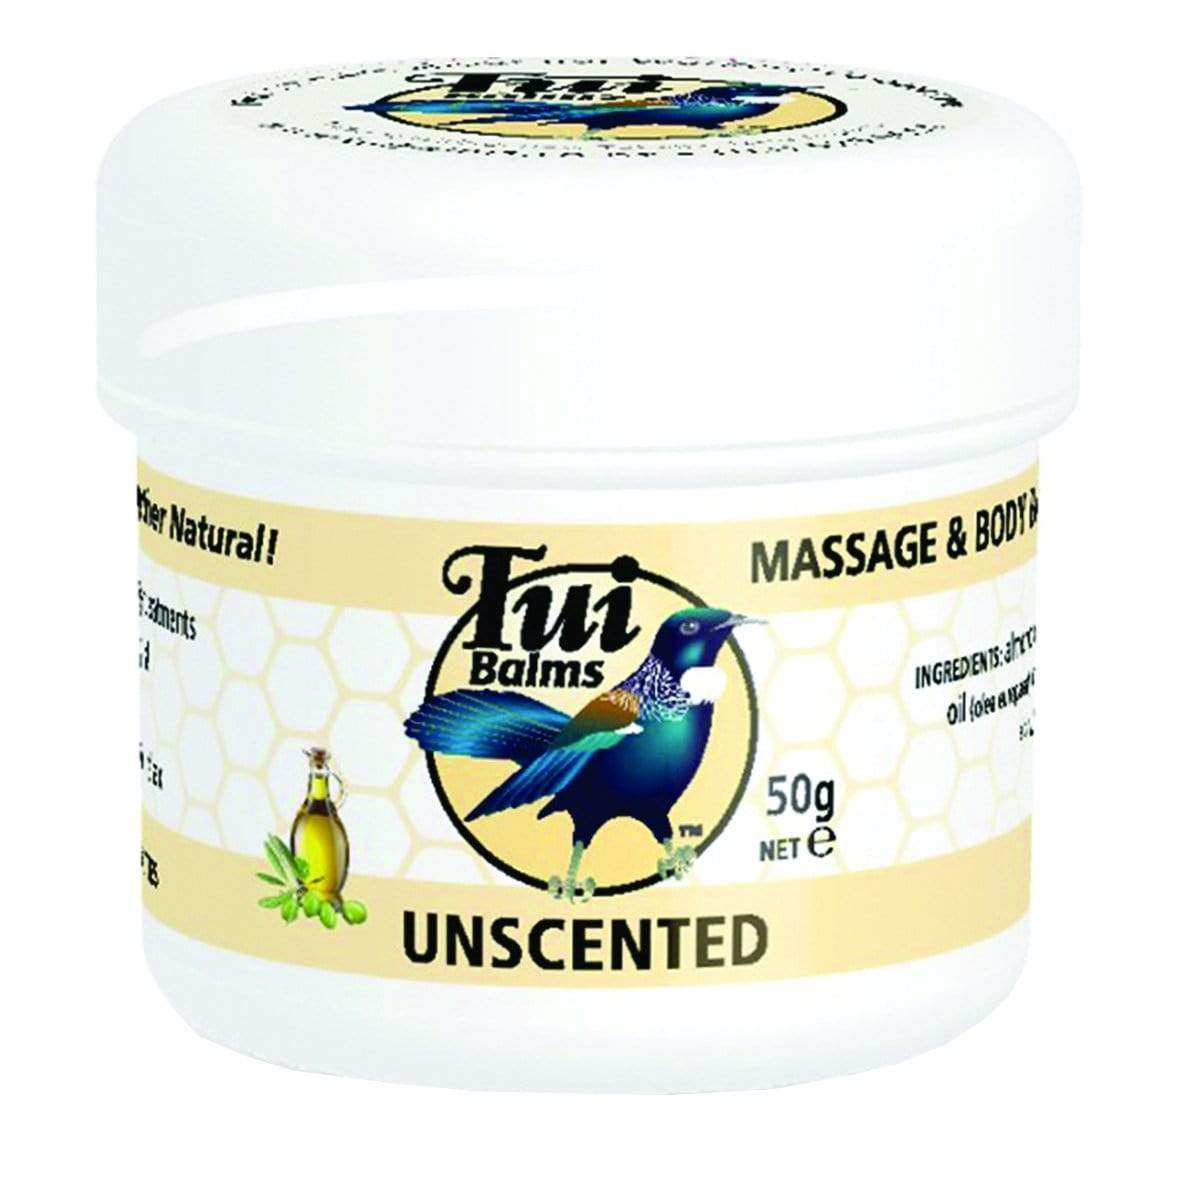 TUI UNSCENTED MASSAGE & BODY BALM